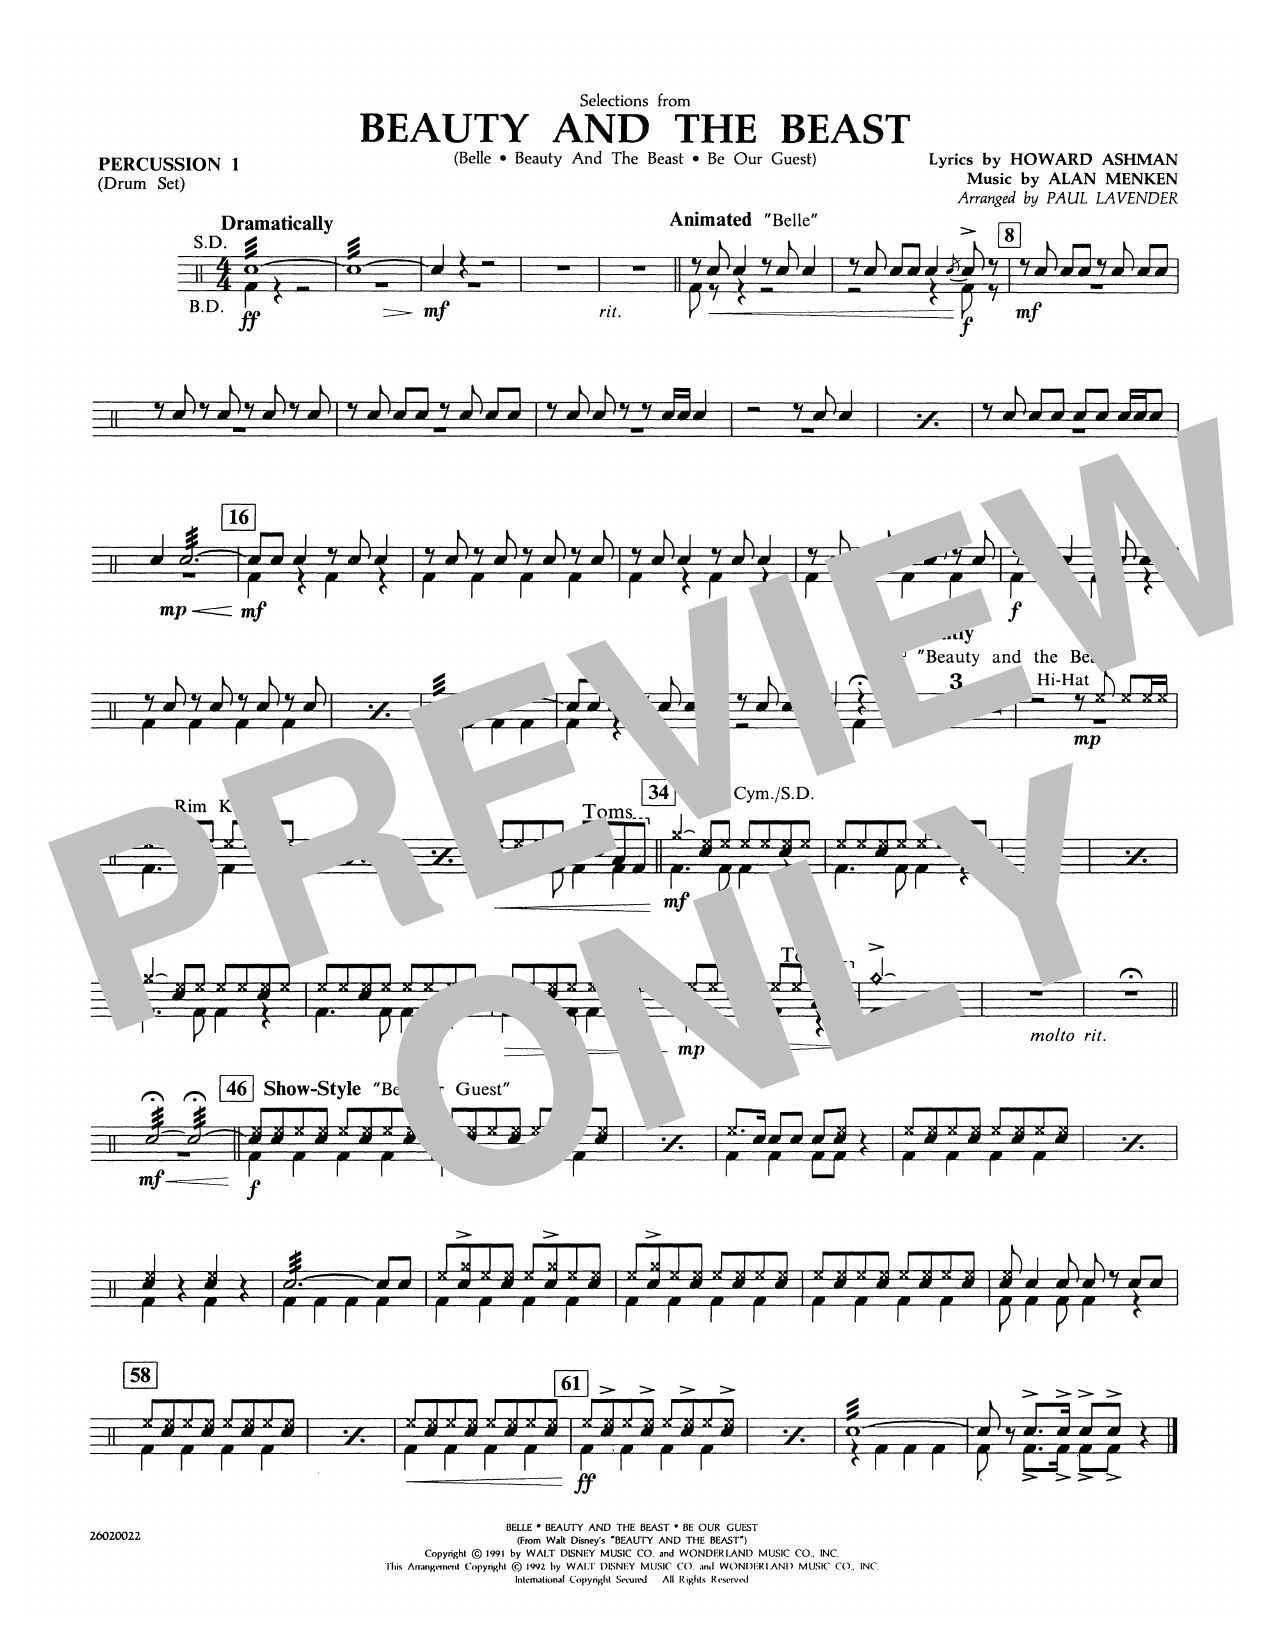 Selections from Beauty and the Beast - Percussion 1 Sheet Music